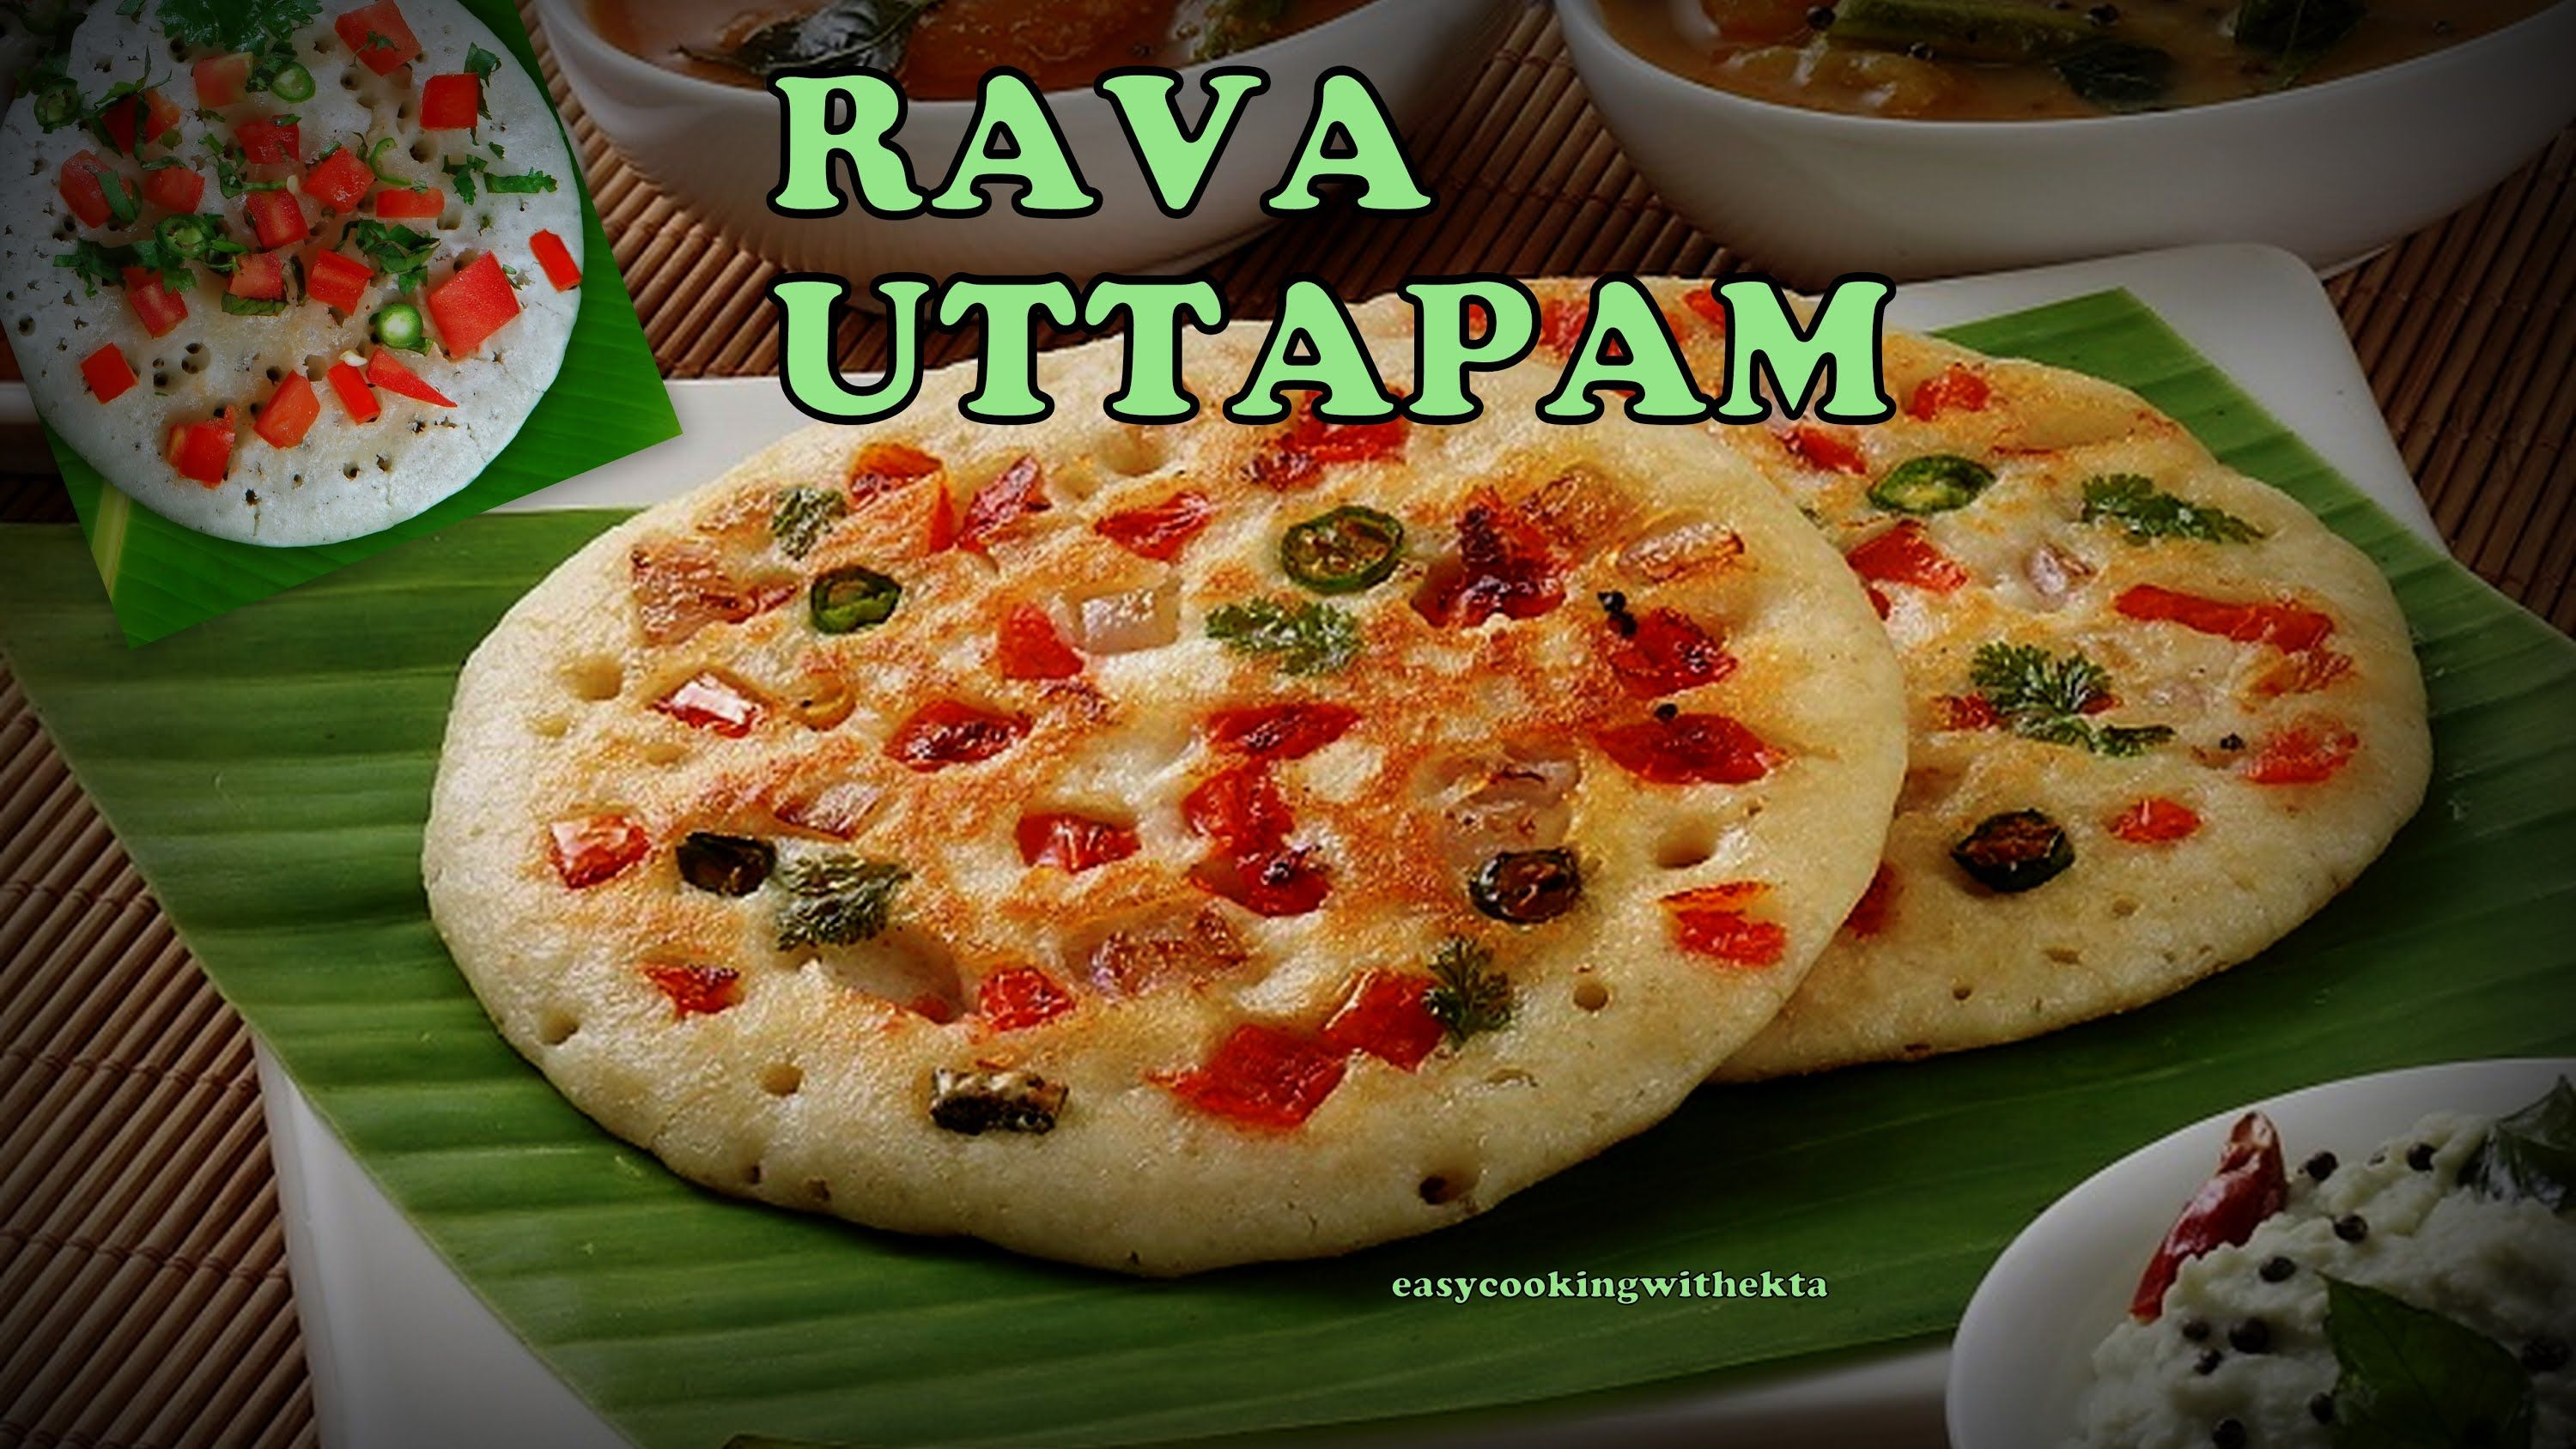 Uttapam recipe healthy indian breakfast lunch dinner recipes veg uttapam recipe healthy indian breakfast lunch dinner recipes veg rec forumfinder Gallery